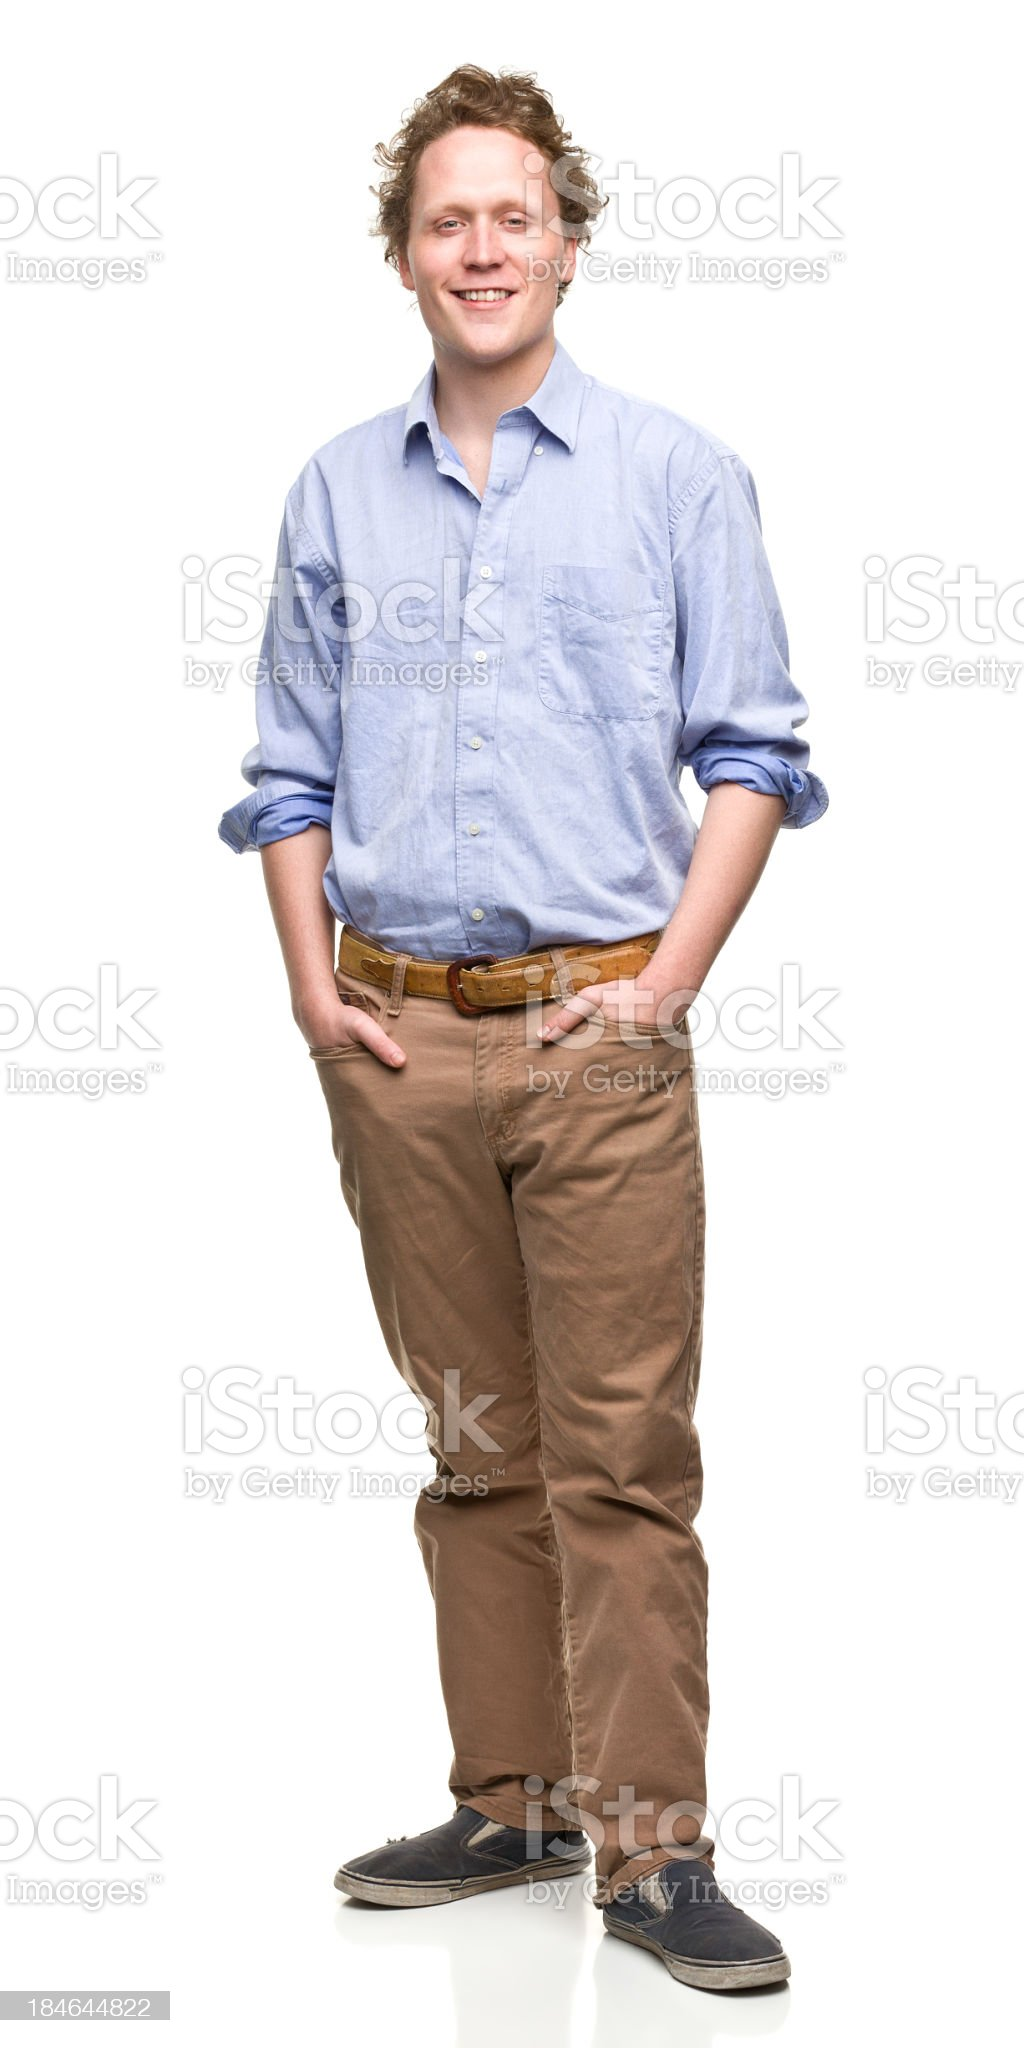 Young Man With Hands in Pockets royalty-free stock photo